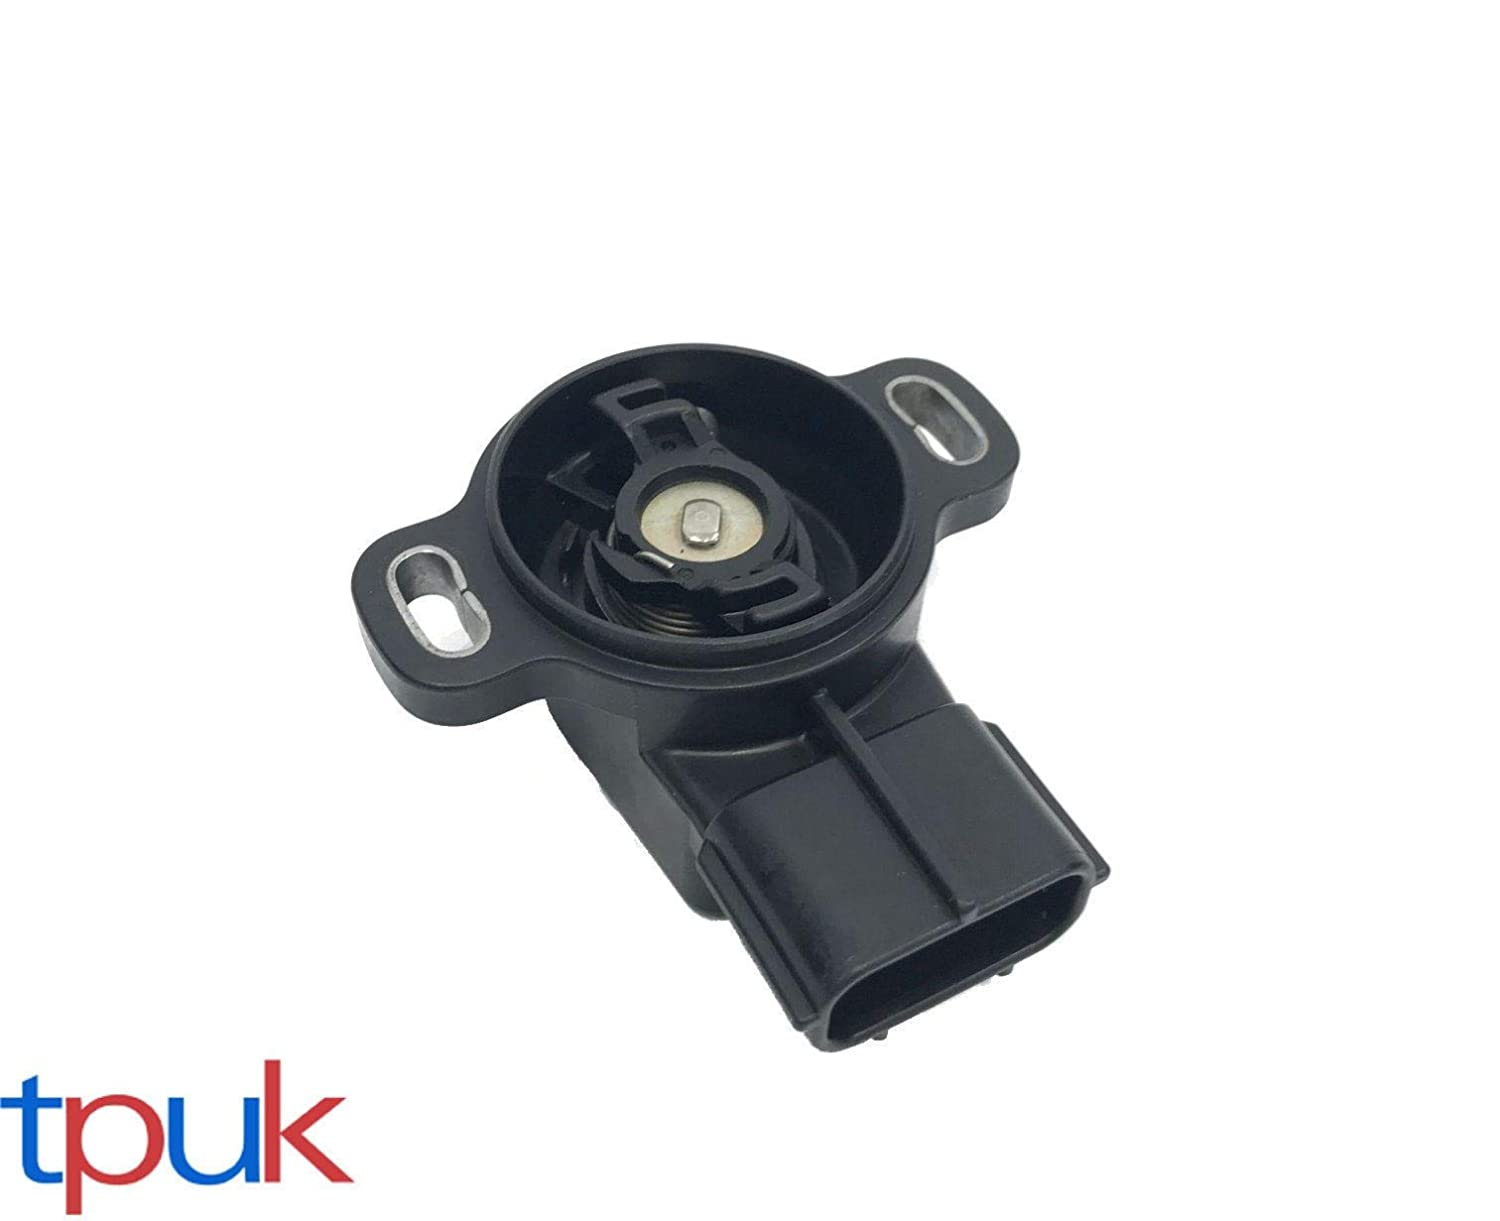 X-TYPE S-TYPE XJ6 X350 THROTTLE BODY POSITION SENSOR 2.5 3.0 V6 R 4.2